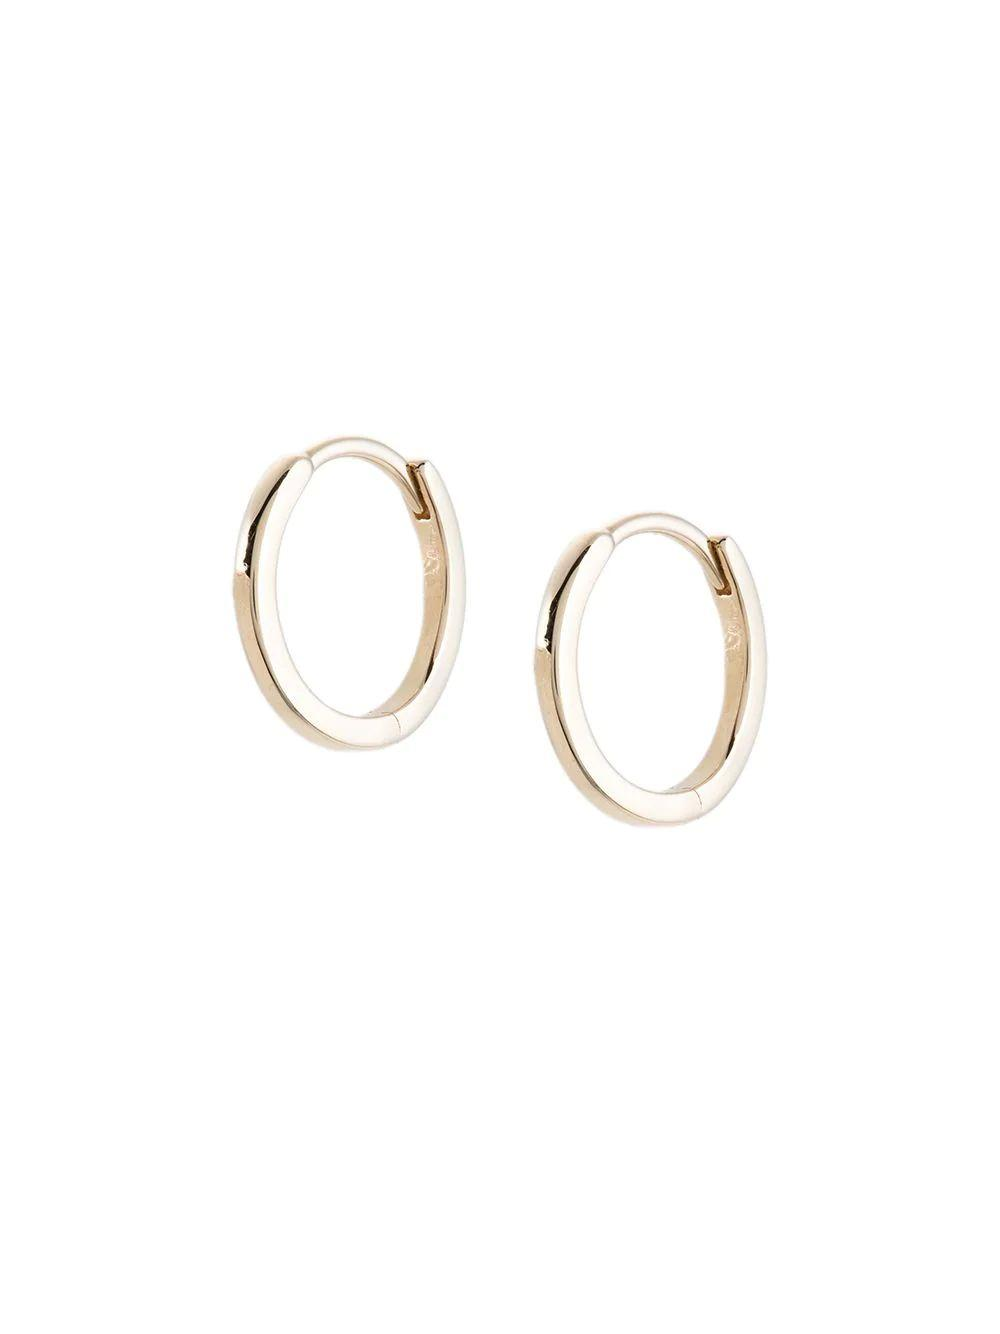 Solid Gold Huggie Earrings